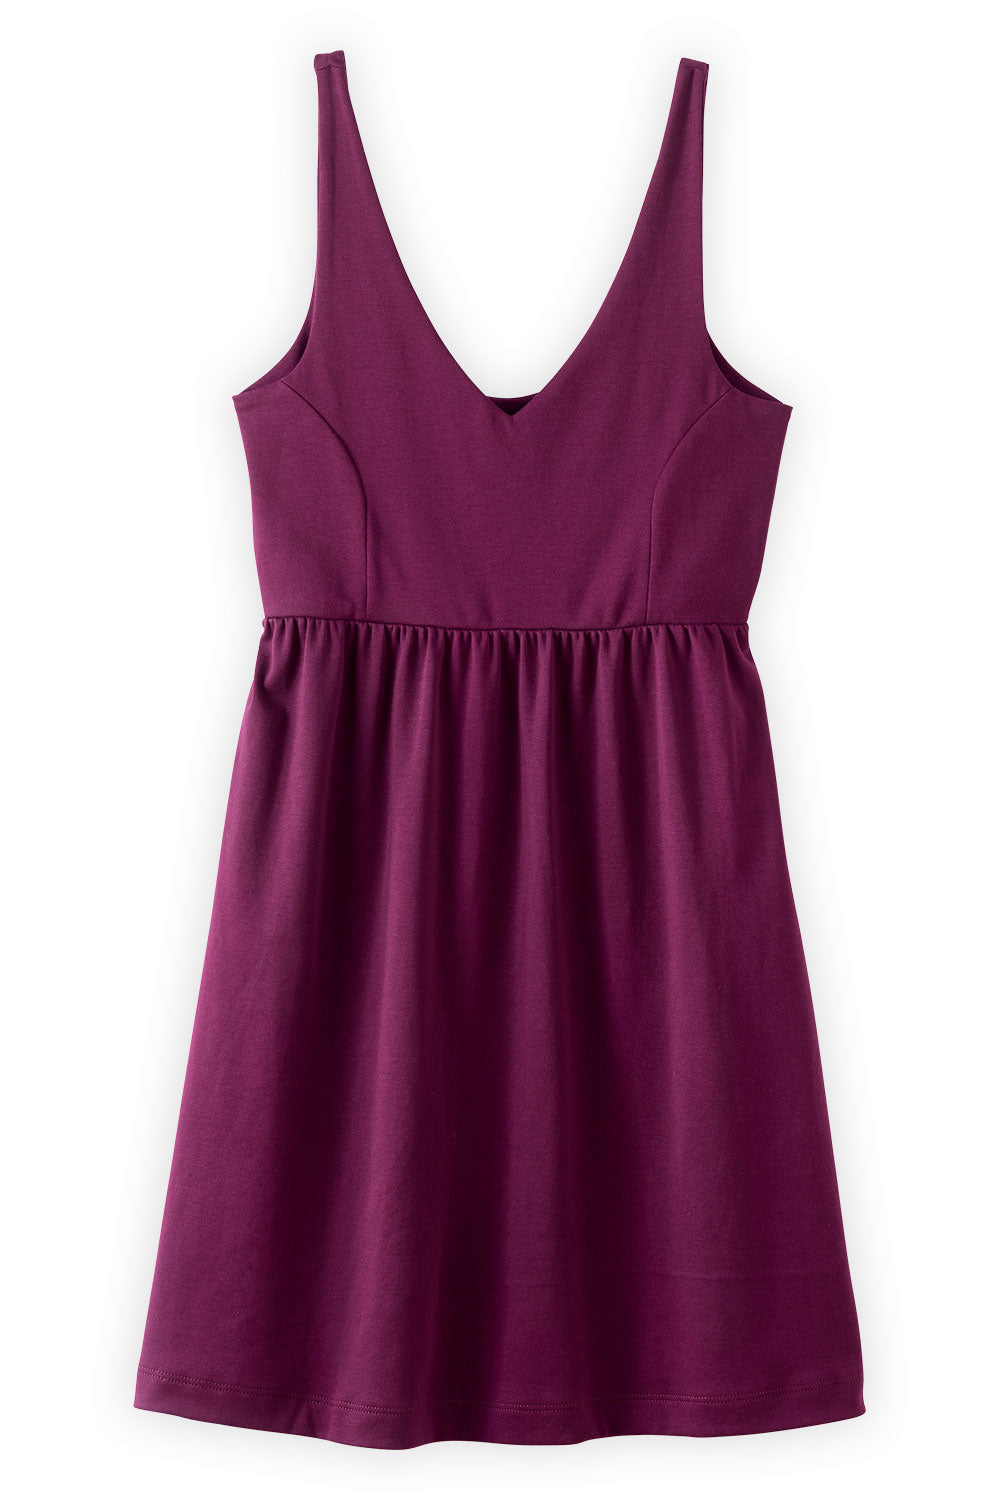 fair-indigo-womens-fair-trade-organic-chemise